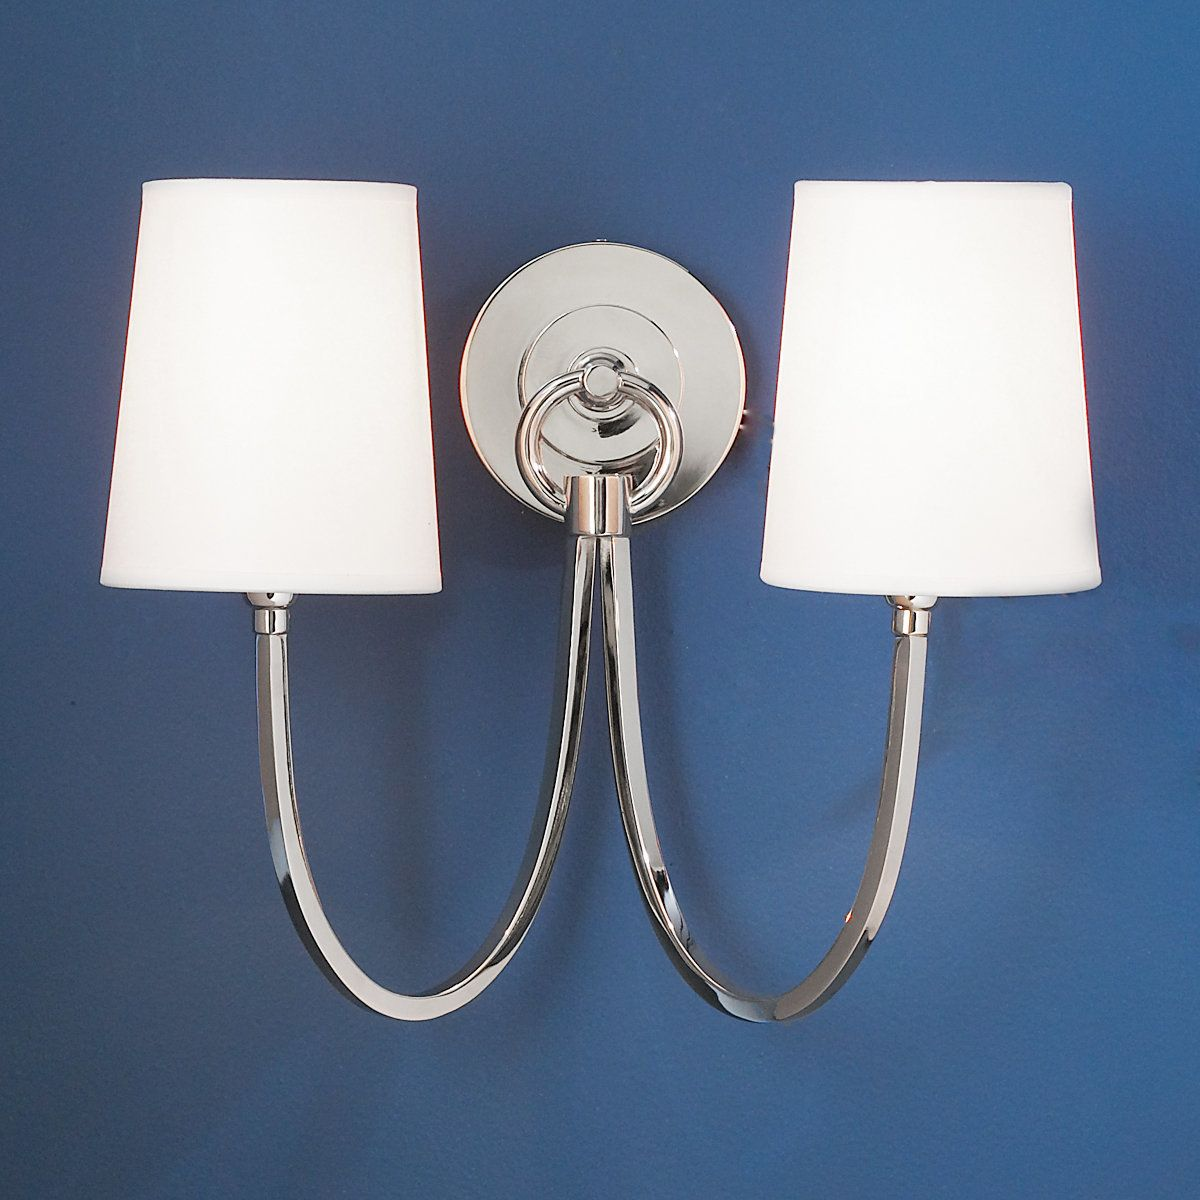 Double Swag Sconce   2 Light Polished_nickel